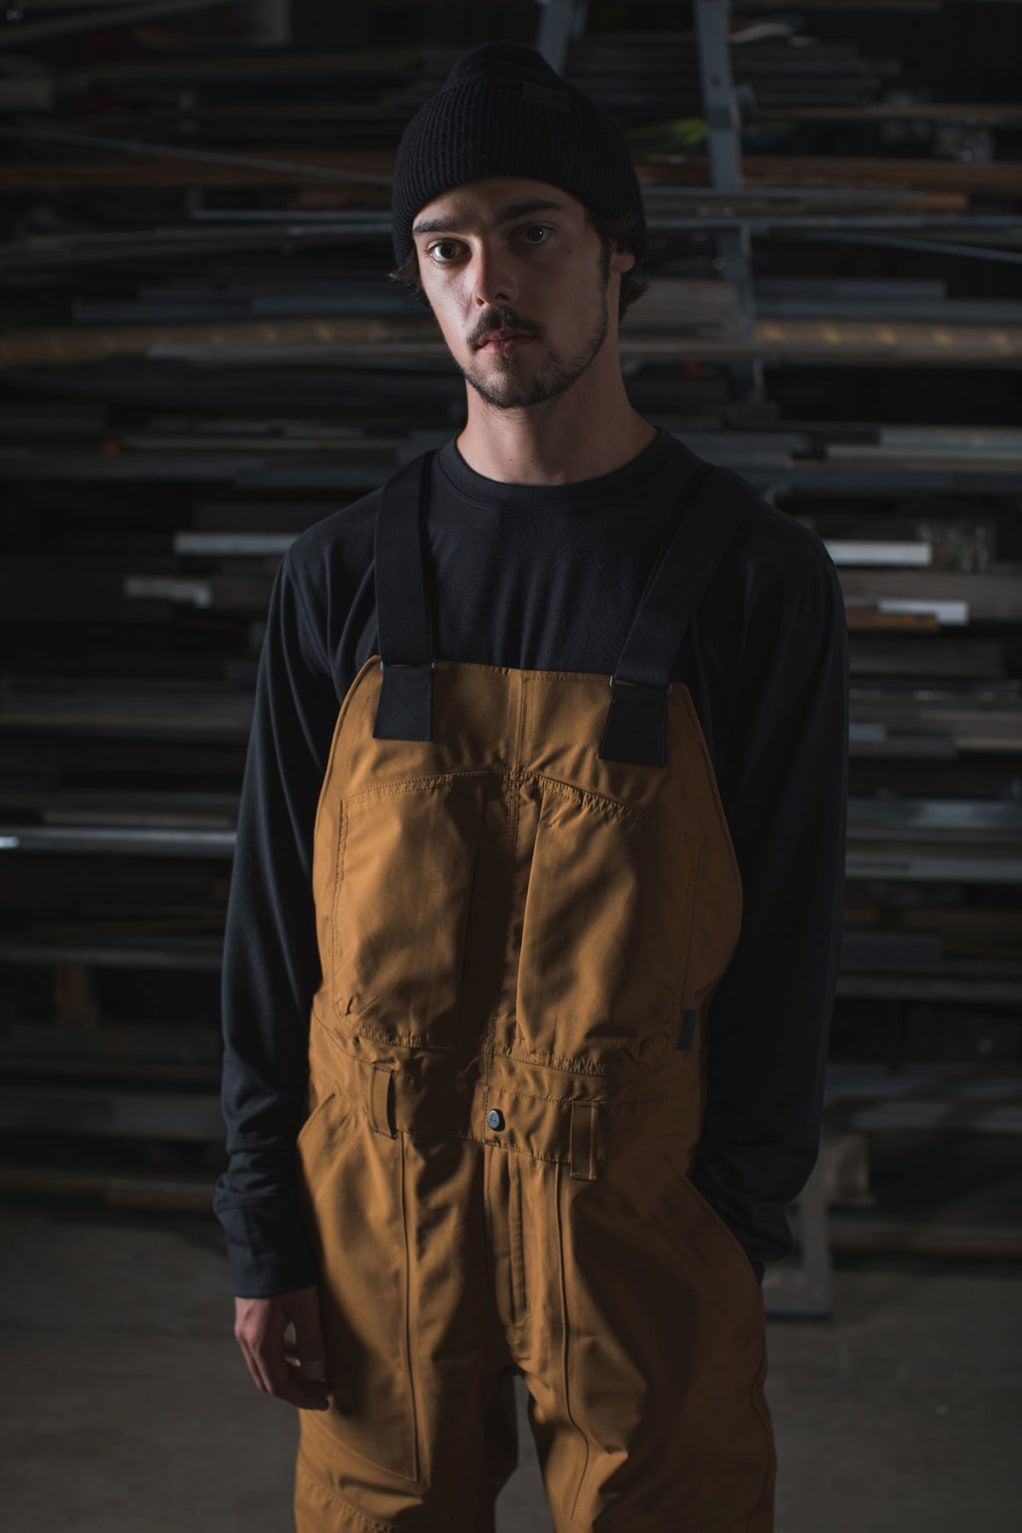 Burton Carhartt Wip Launch Workwear Inspired Collection Built For The Mountains Overalls Men Fashion Carhartt Overalls Men